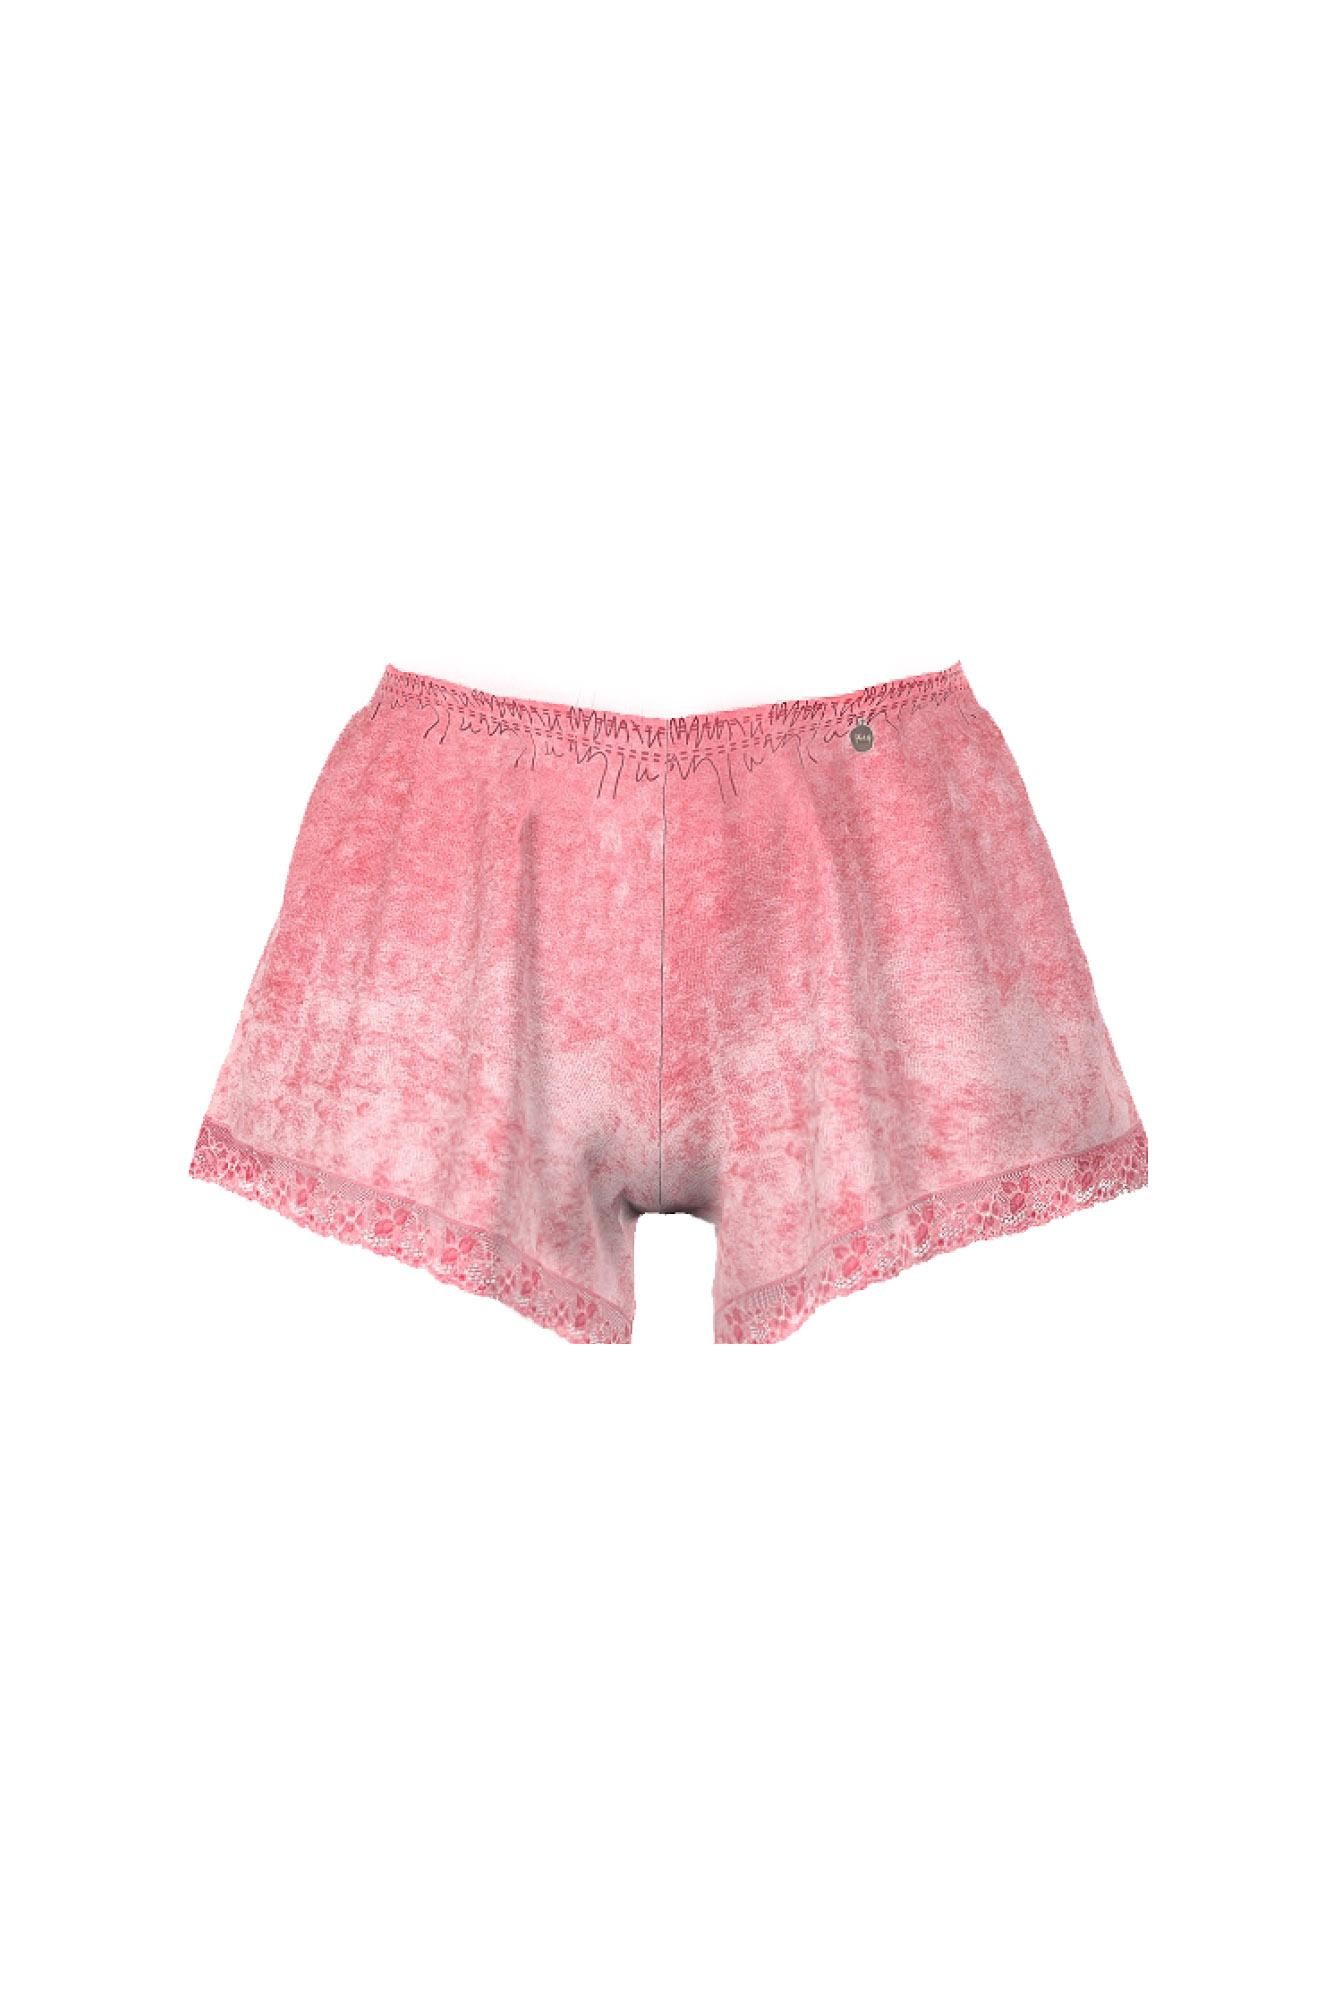 Women's Velour Shorts